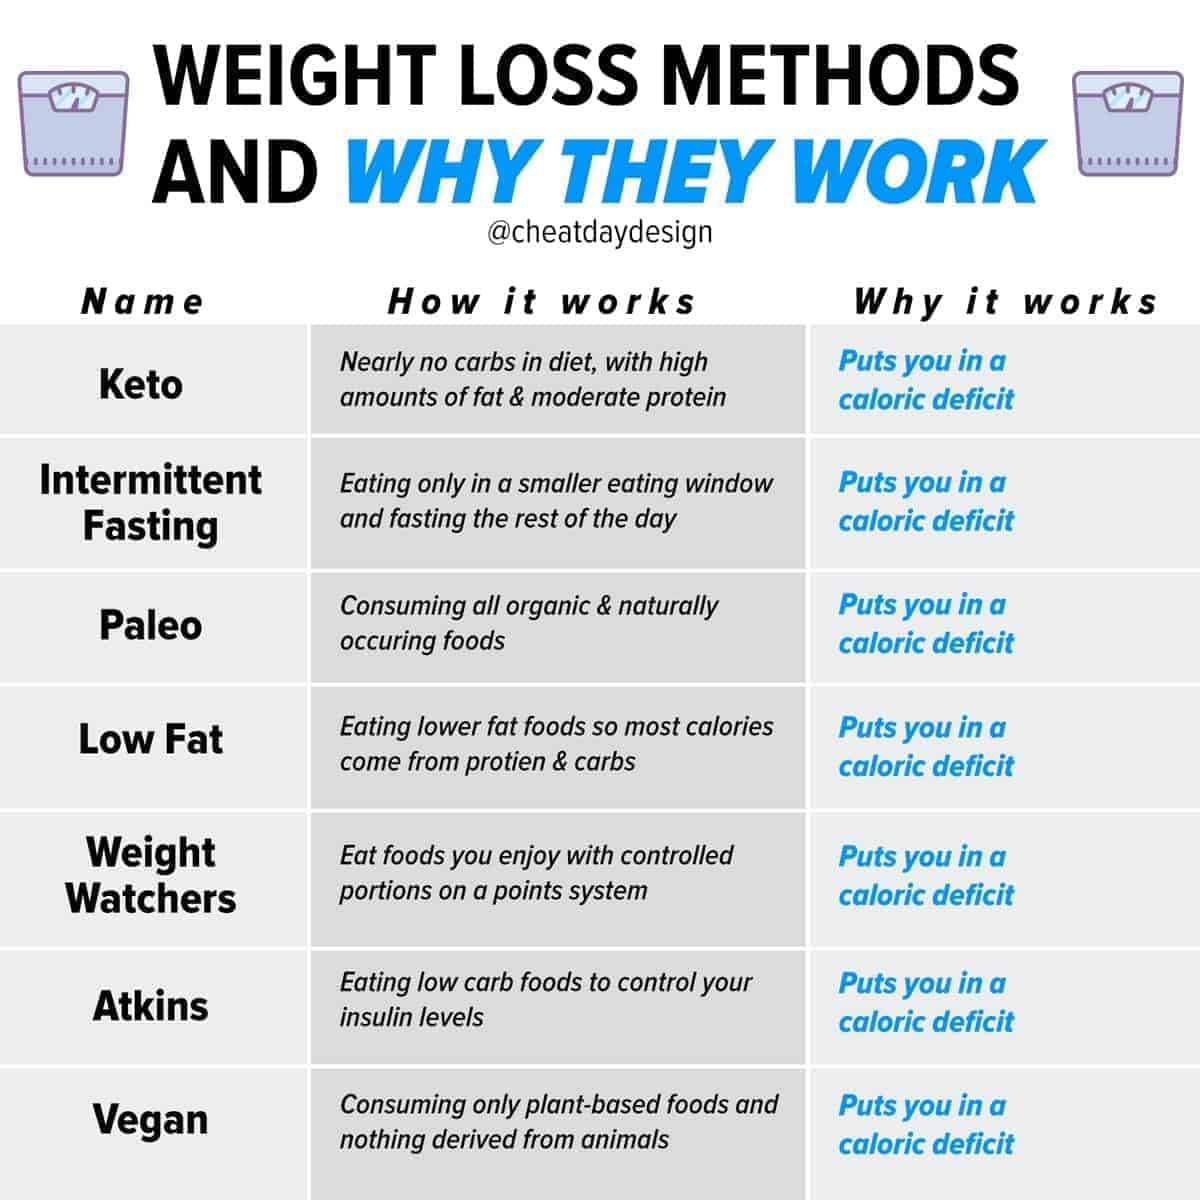 Why popular fat loss diets work